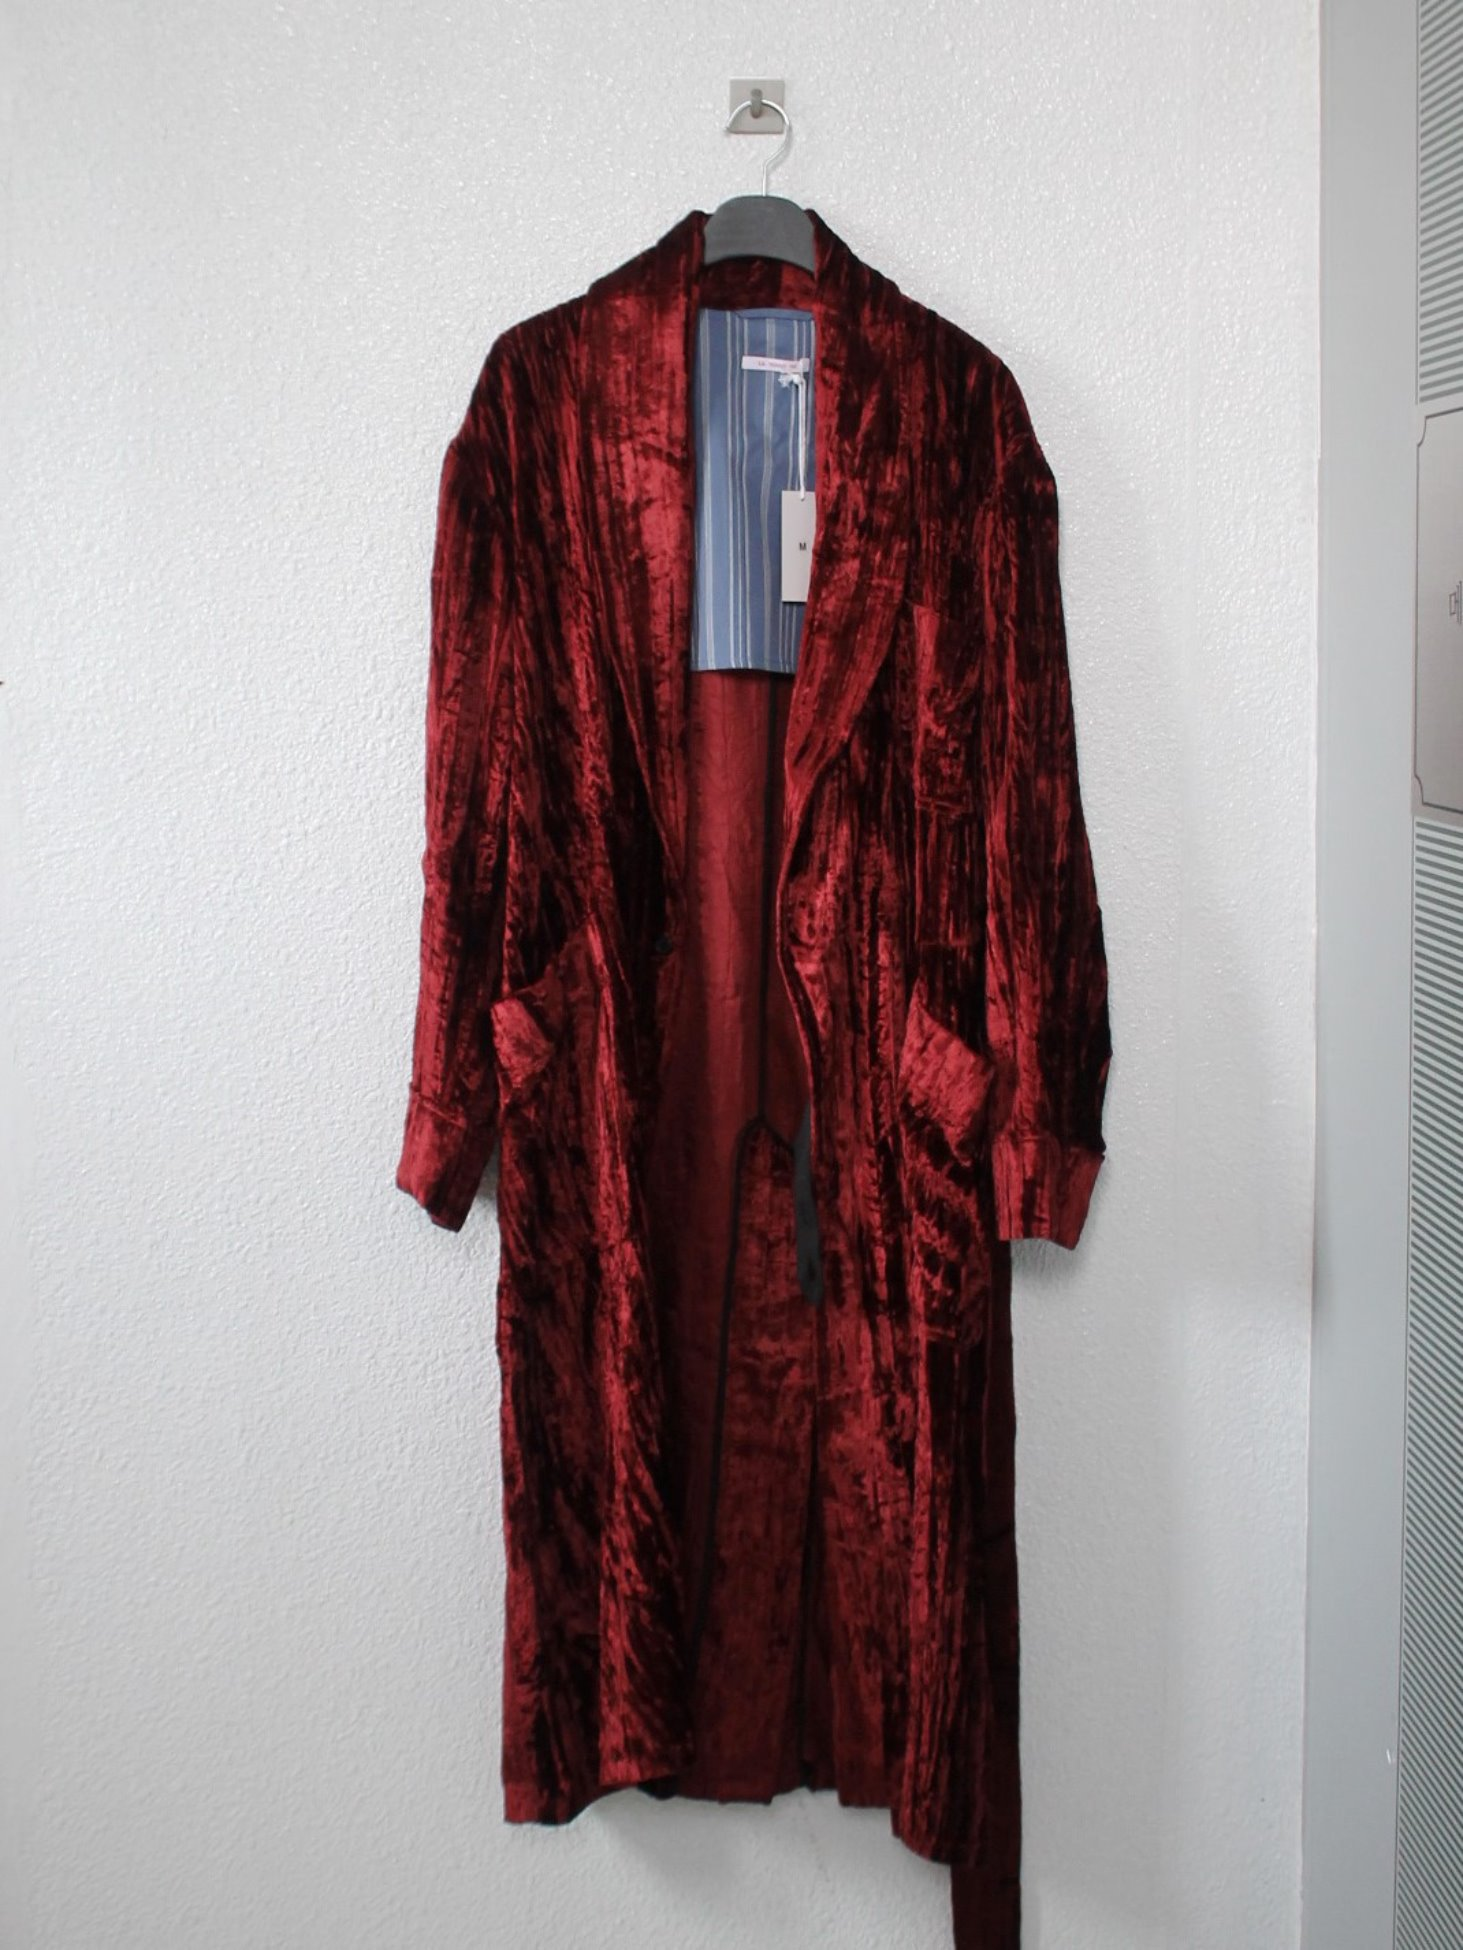 [s.k. manor hill] Wallace Robe - Maroon Crushed Velvet